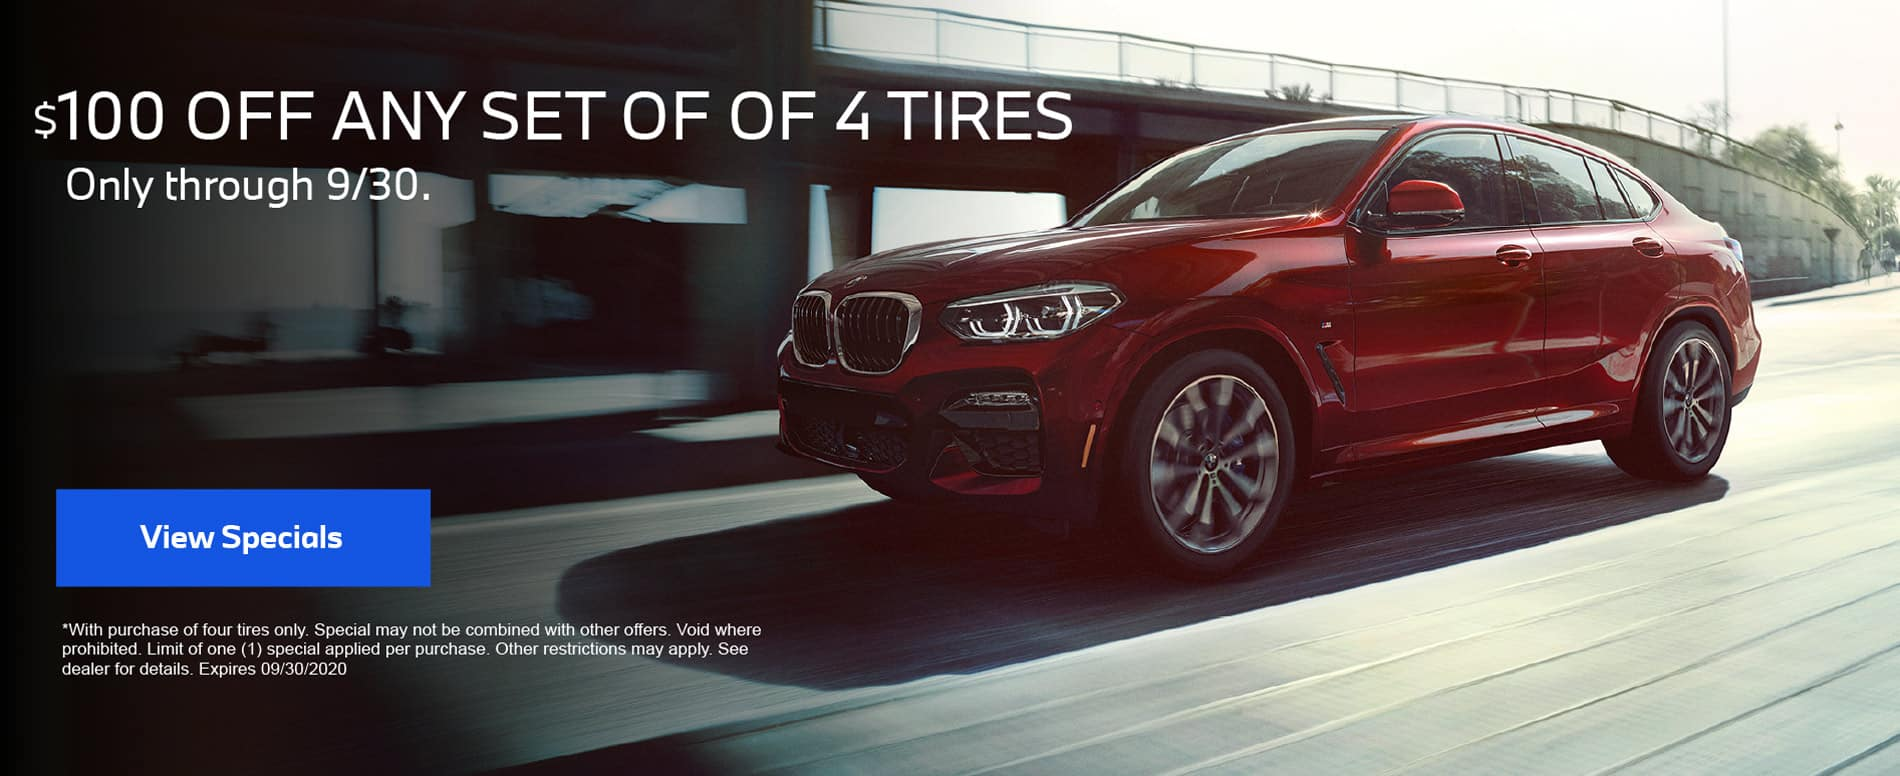 $100 OFF ANY SET OF 4TIRES. Only through 9/30. View Specials